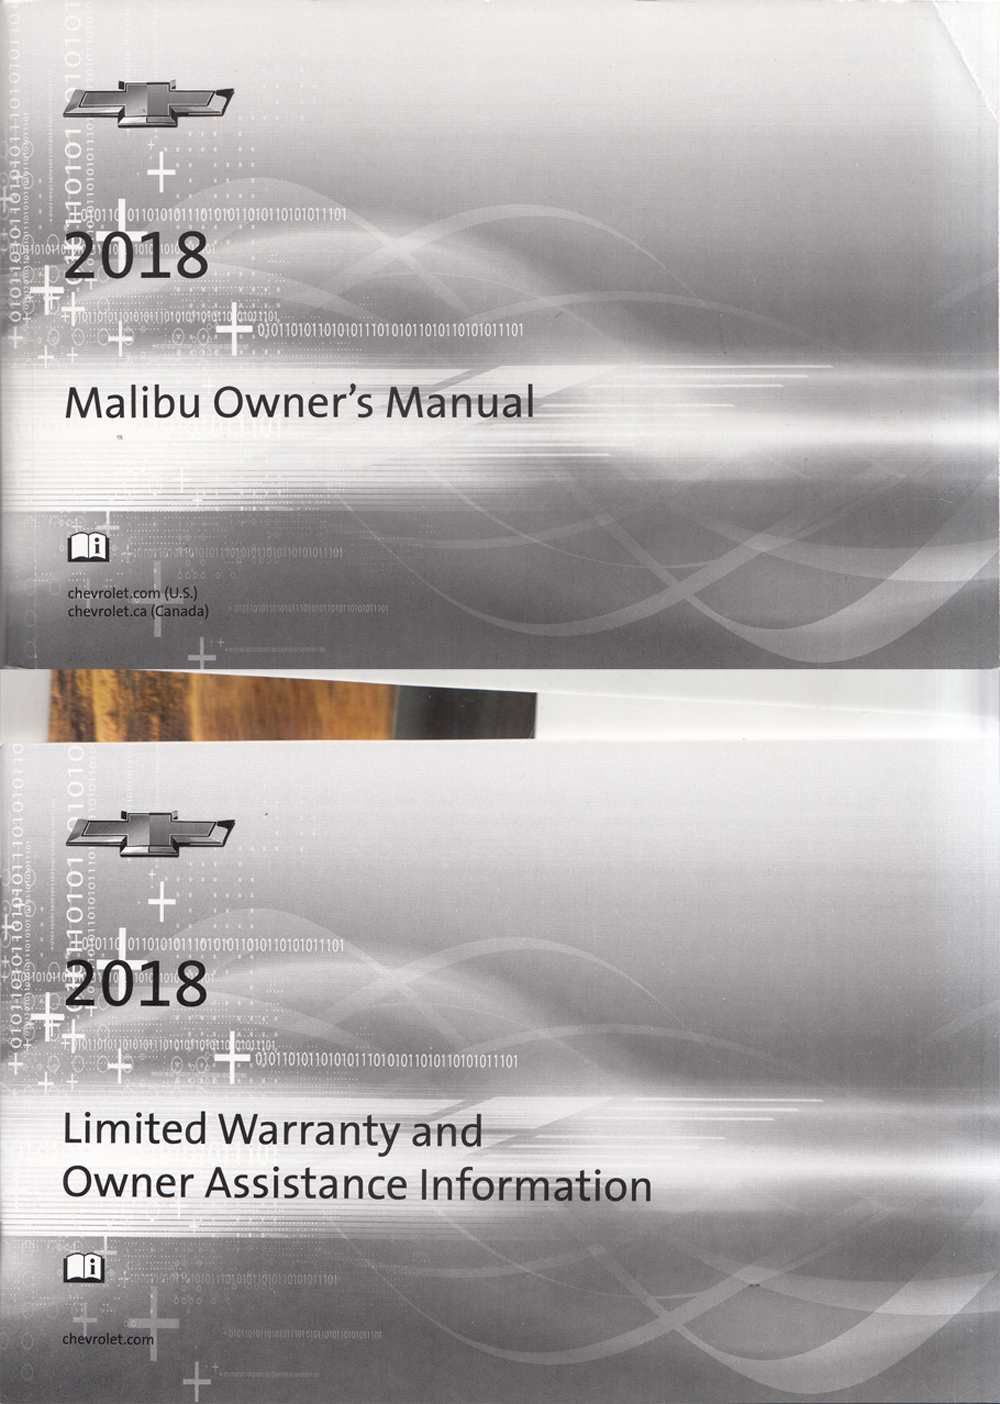 2018 Chevrolet Malibu Owners Manual with Pamphlets Original